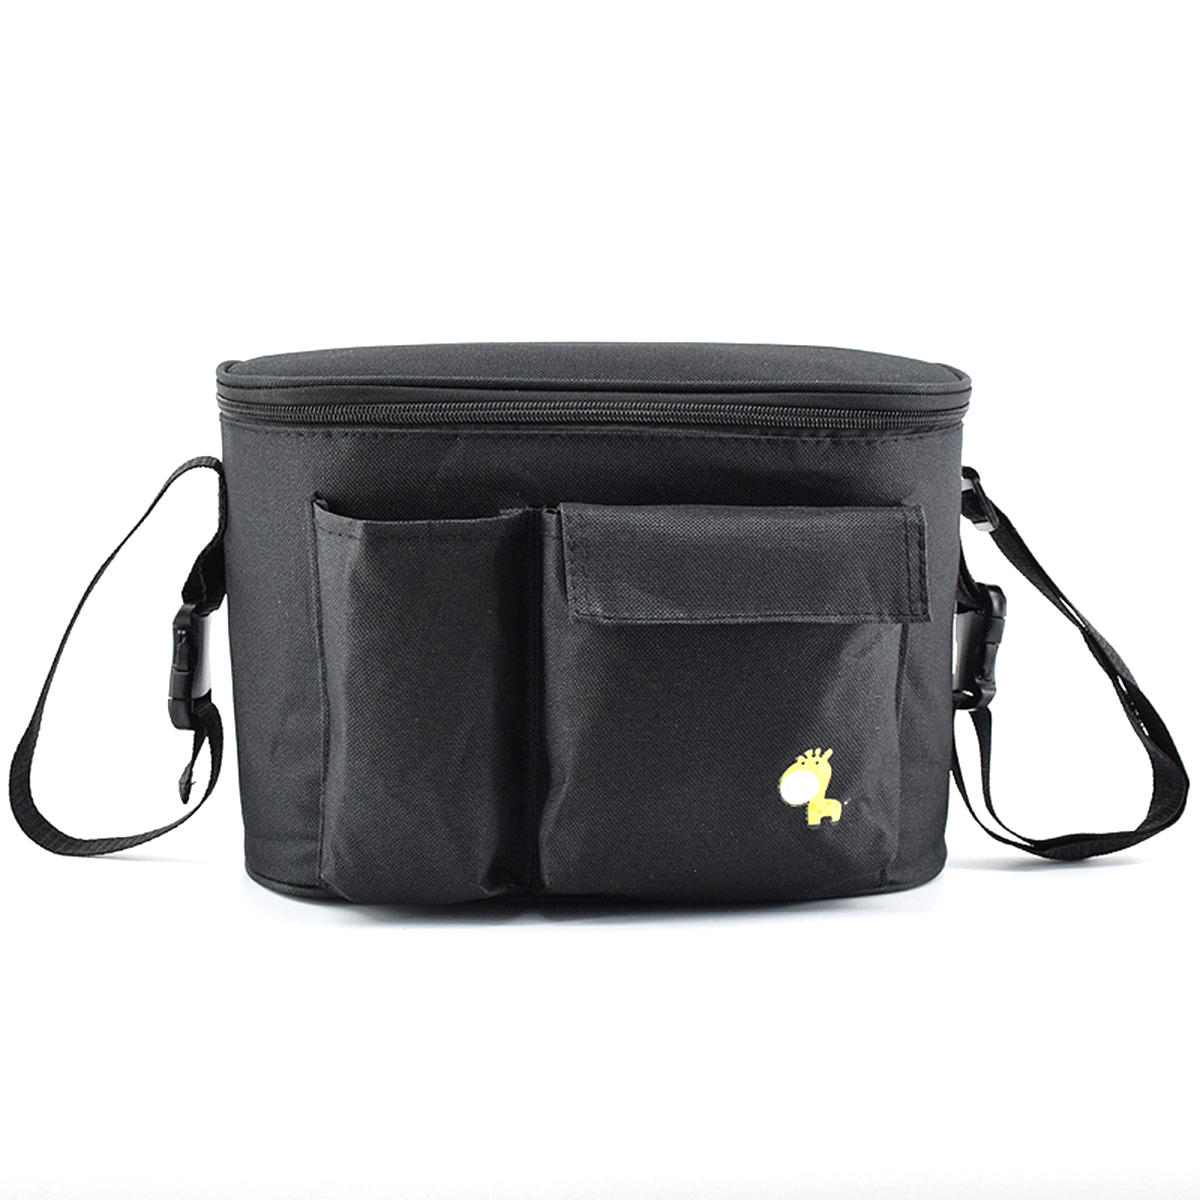 Stroller Baby Nappy Changing Bag Travel Shoulder Diaper Buggy Pram Pushchair Strorage Pouch фото